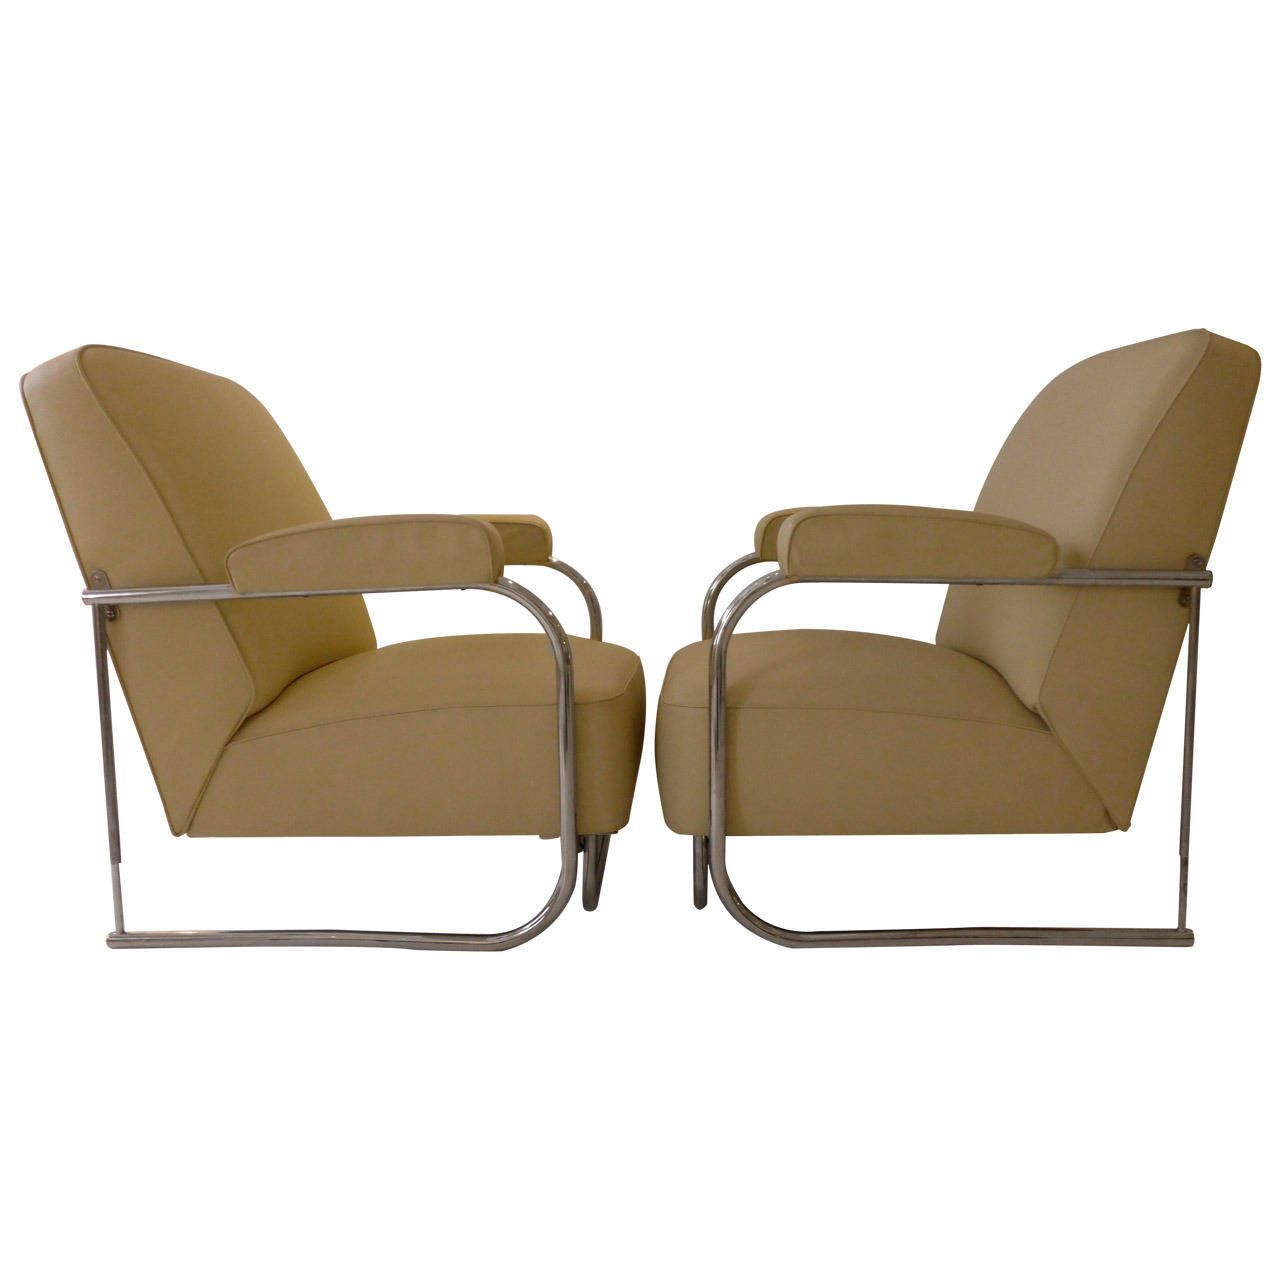 Pair of French Modernist Lounge Chairs | From a unique collection of antique and modern lounge chairs at https://www.1stdibs.com/furniture/seating/lounge-chairs/